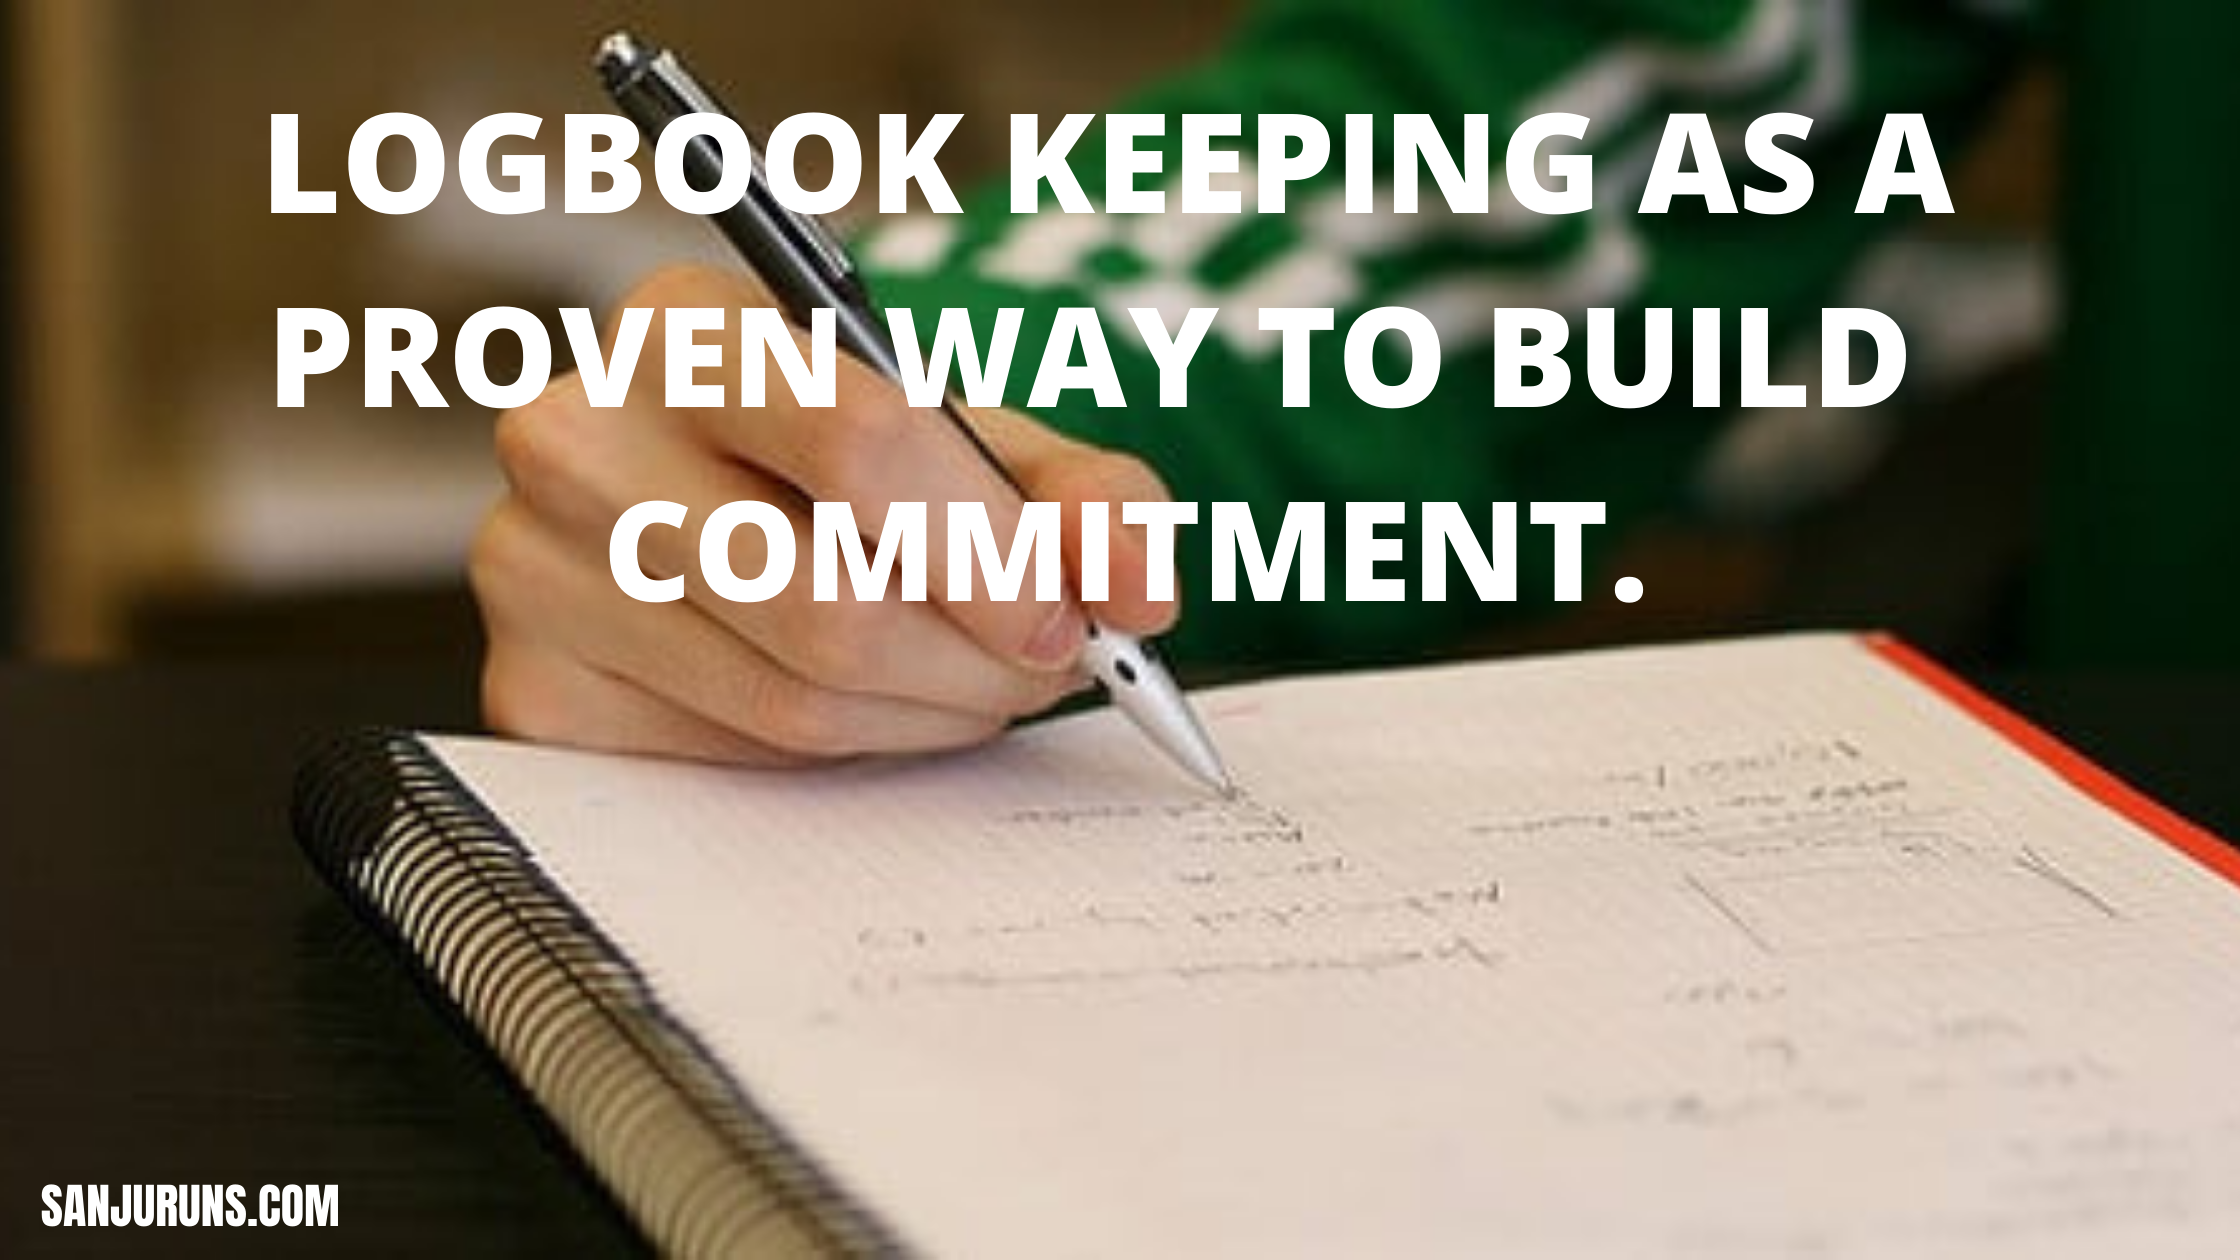 Building commitment by keeping a record of your activity in a logbook